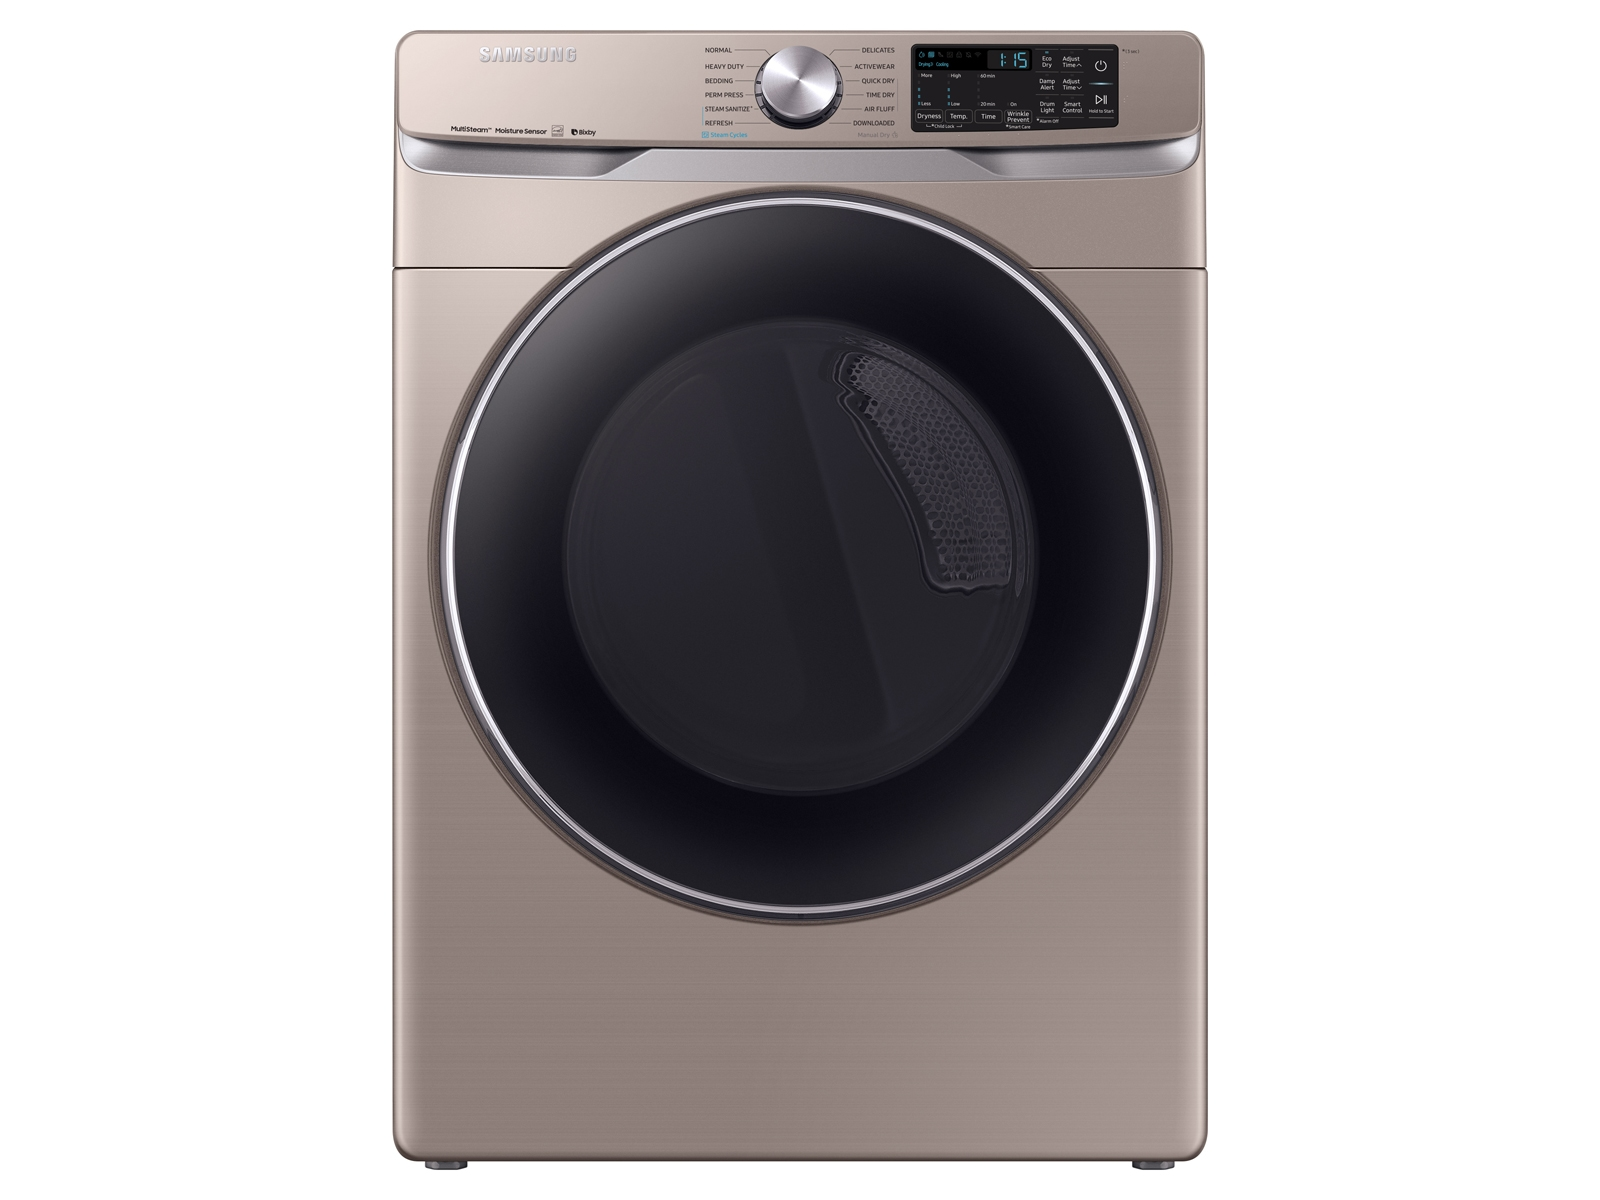 Samsung 7.5 cu. ft. Smart Electric Dryer with Steam Sanitize+ in Champagne